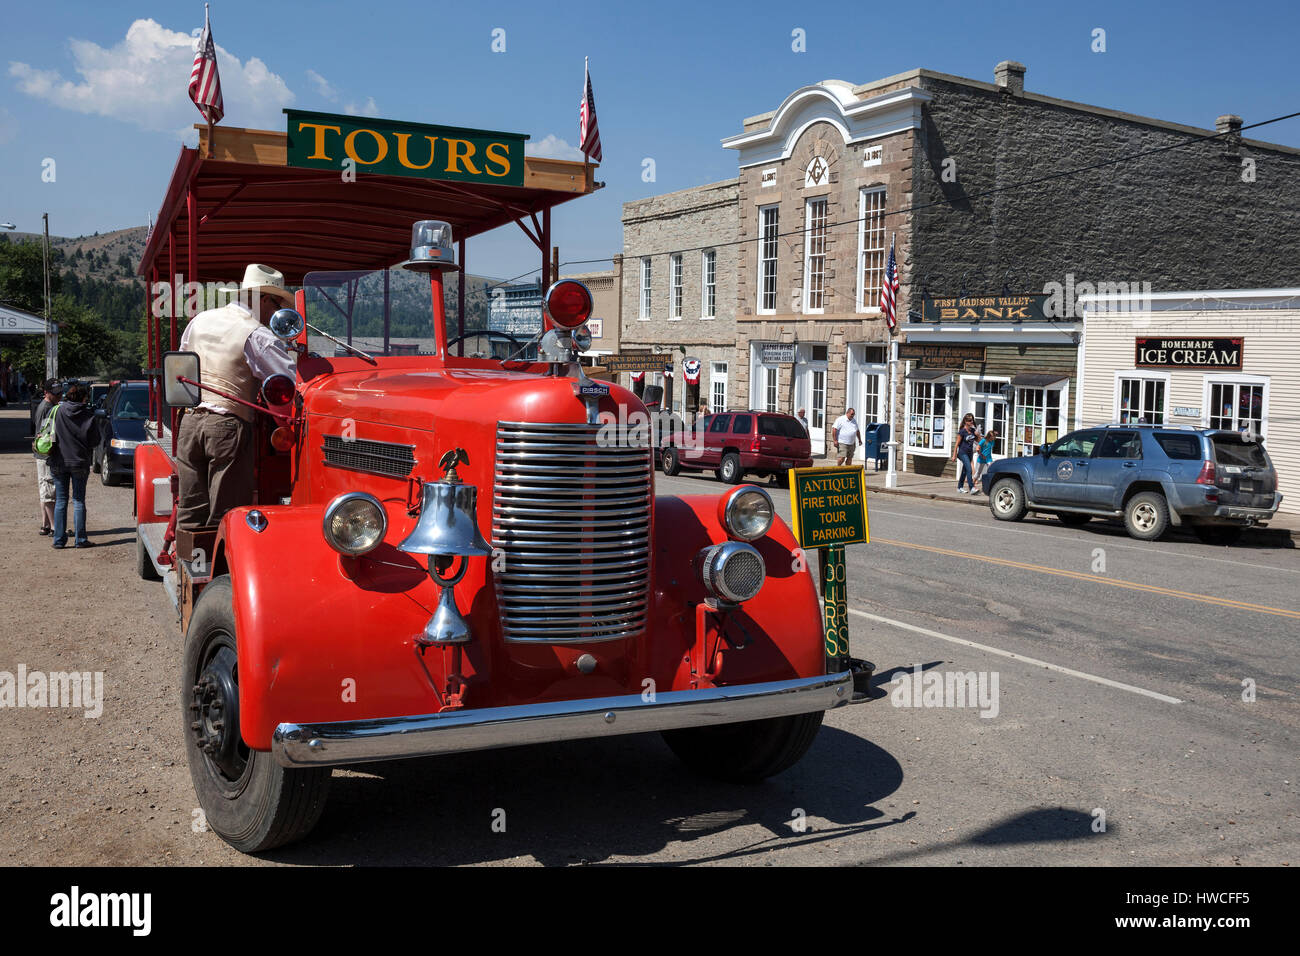 Oldtimer for tourist tours, Virginia City, former gold mining town, Montana Province, USA - Stock Image